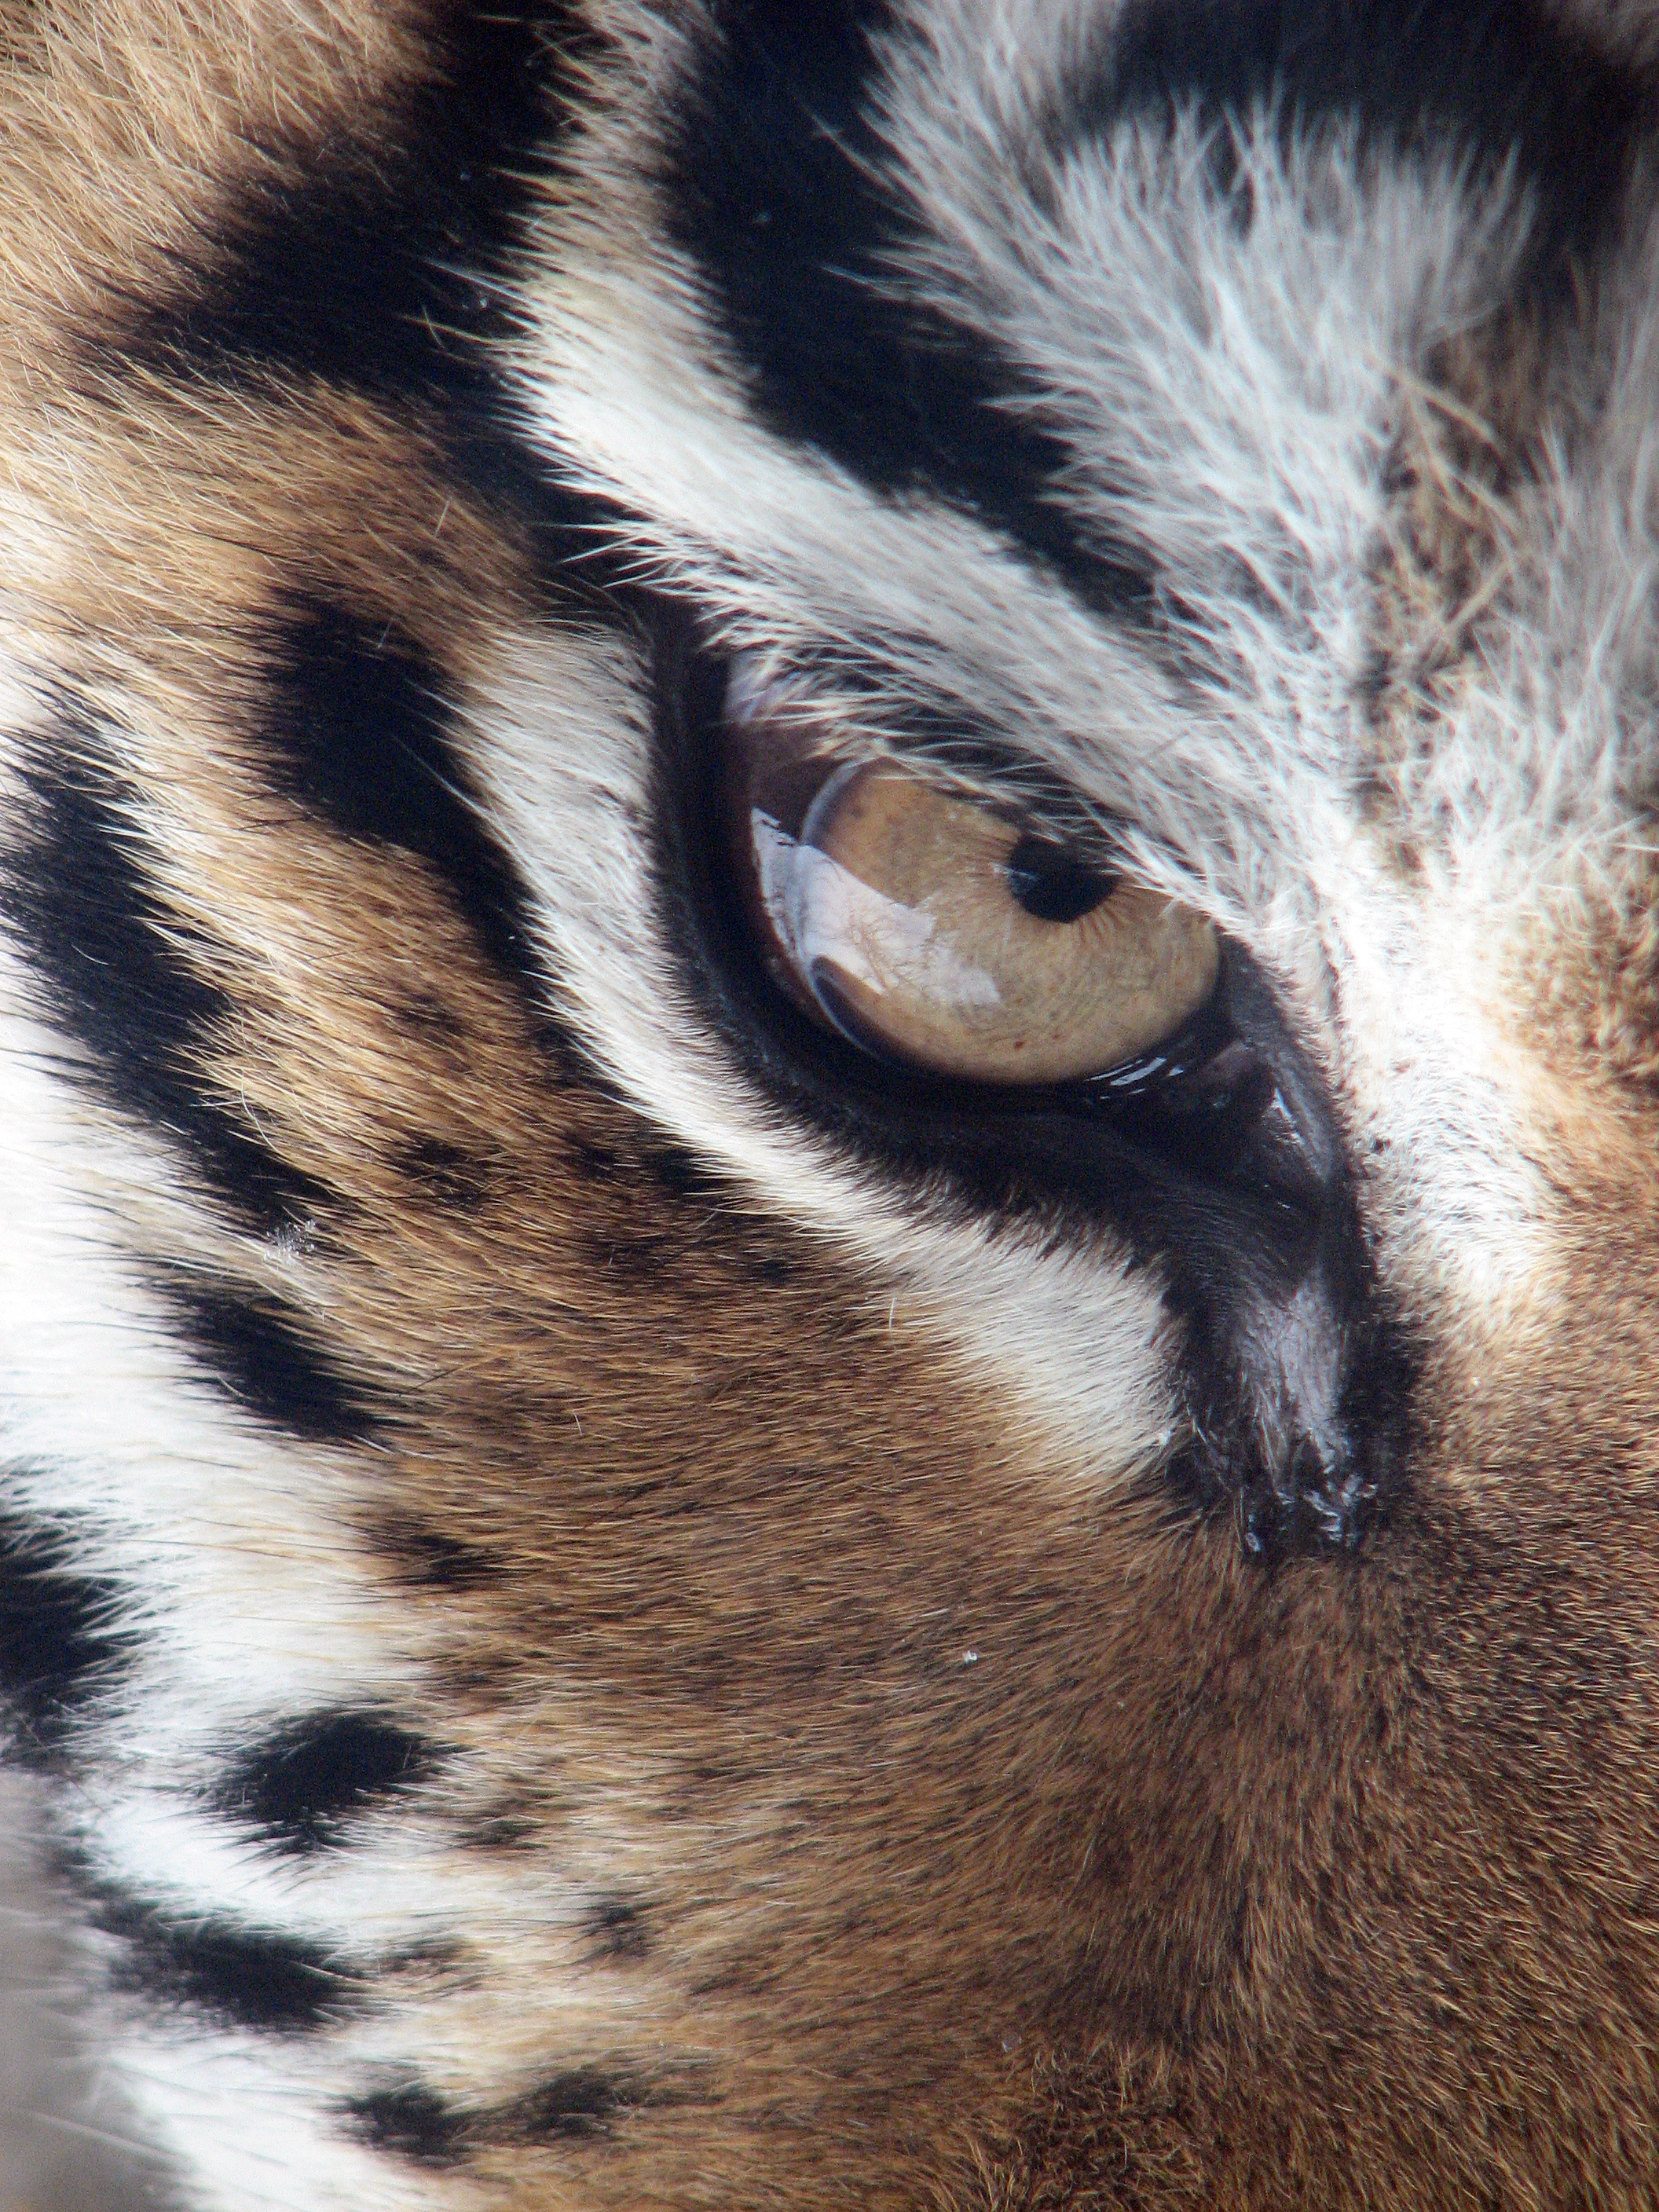 http://upload.wikimedia.org/wikipedia/commons/2/25/Amur_Tiger_Panthera_tigris_altaica_Eye_2112px_edit.jpg